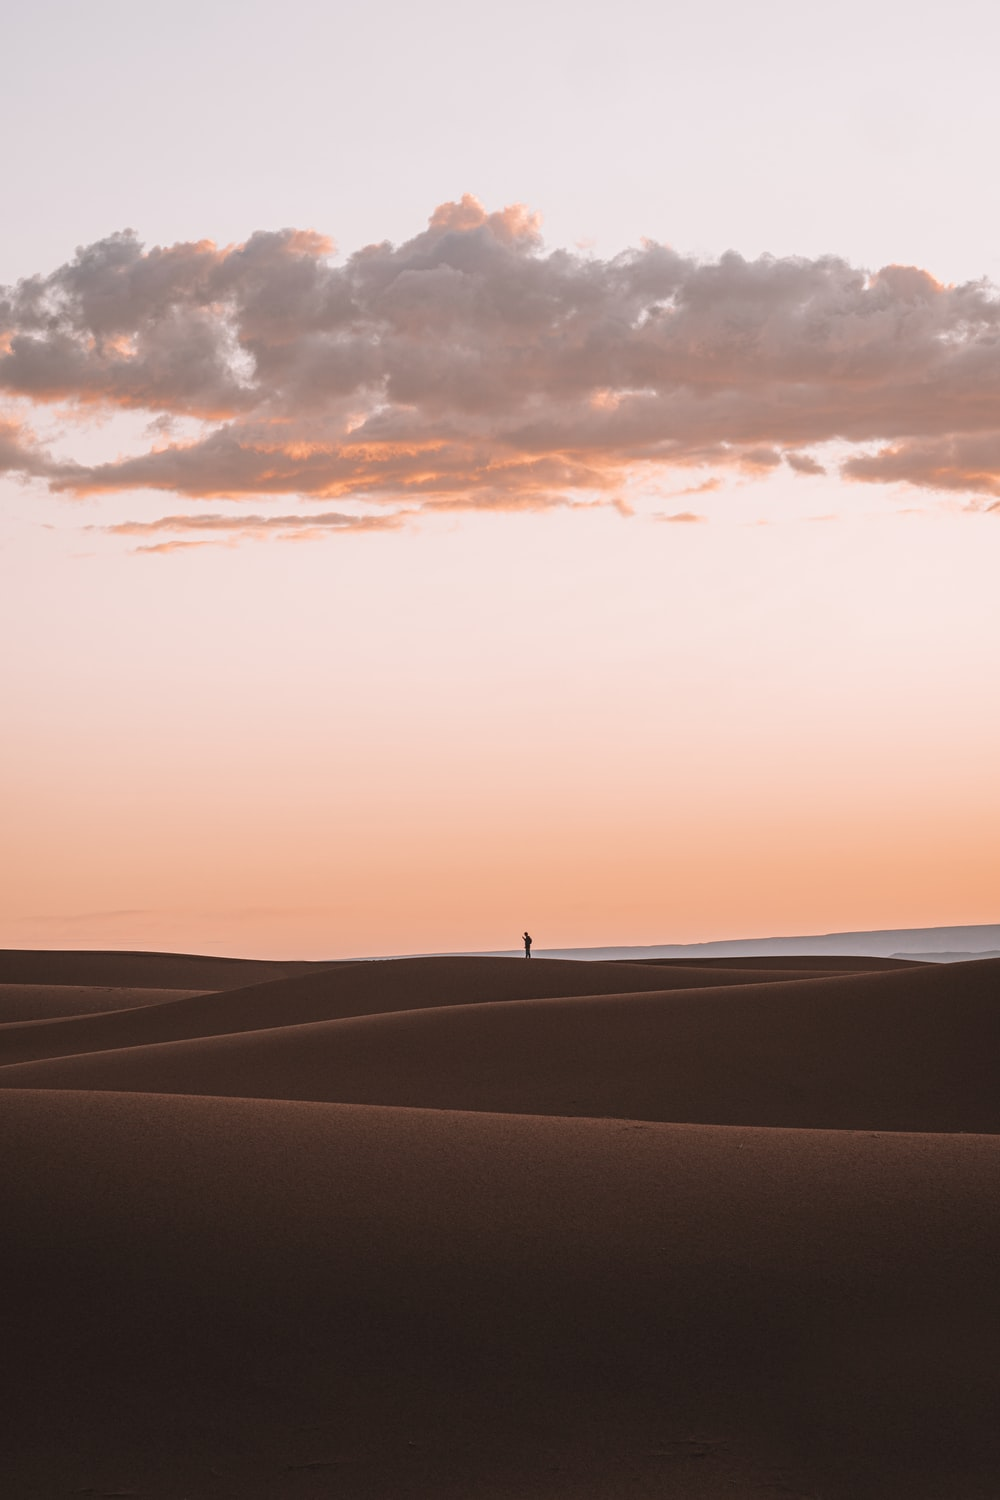 silhouette of person standing on desert